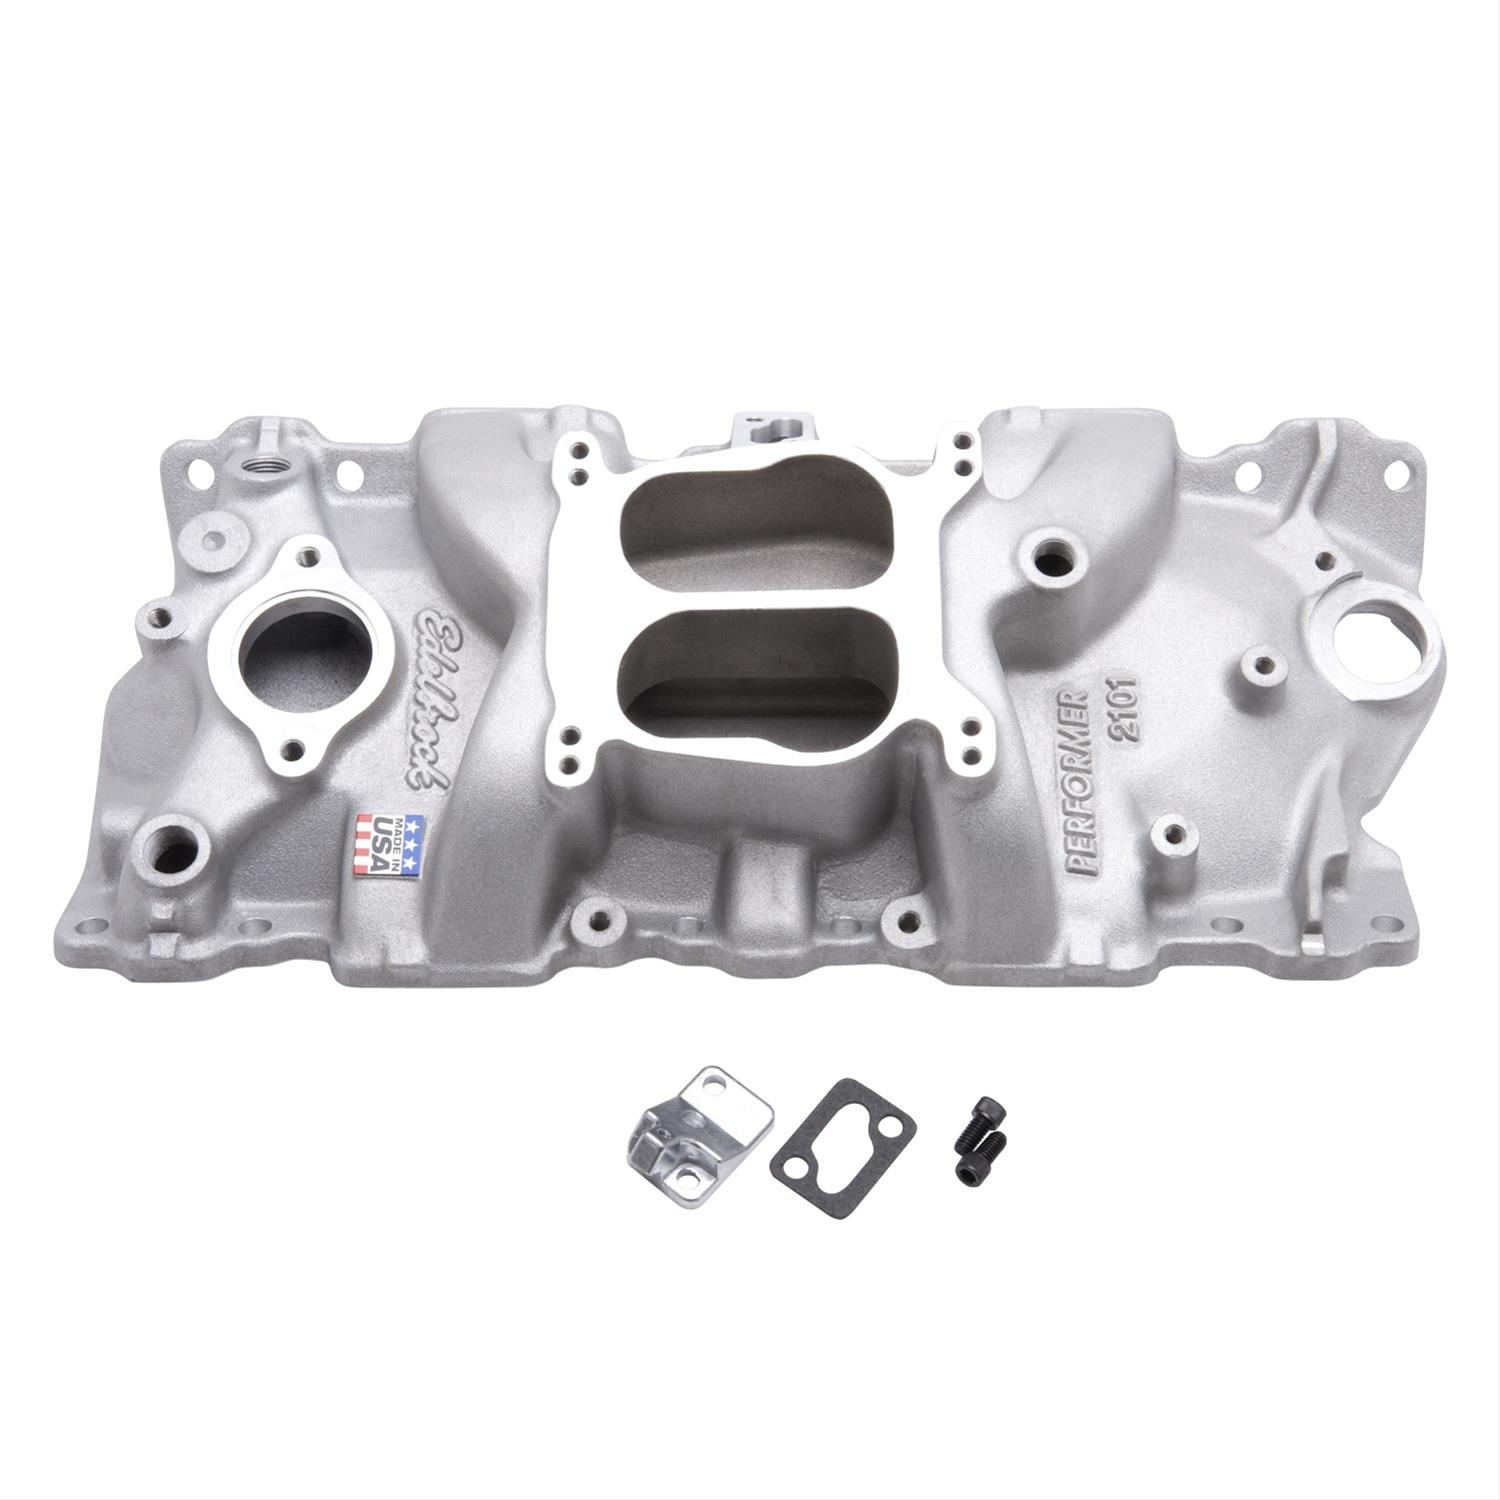 Edelbrock Performer Intake Manifolds 2101 Free Shipping On Orders Chevrolet 350 V8 Engine Block Schematics Over 99 At Summit Racing